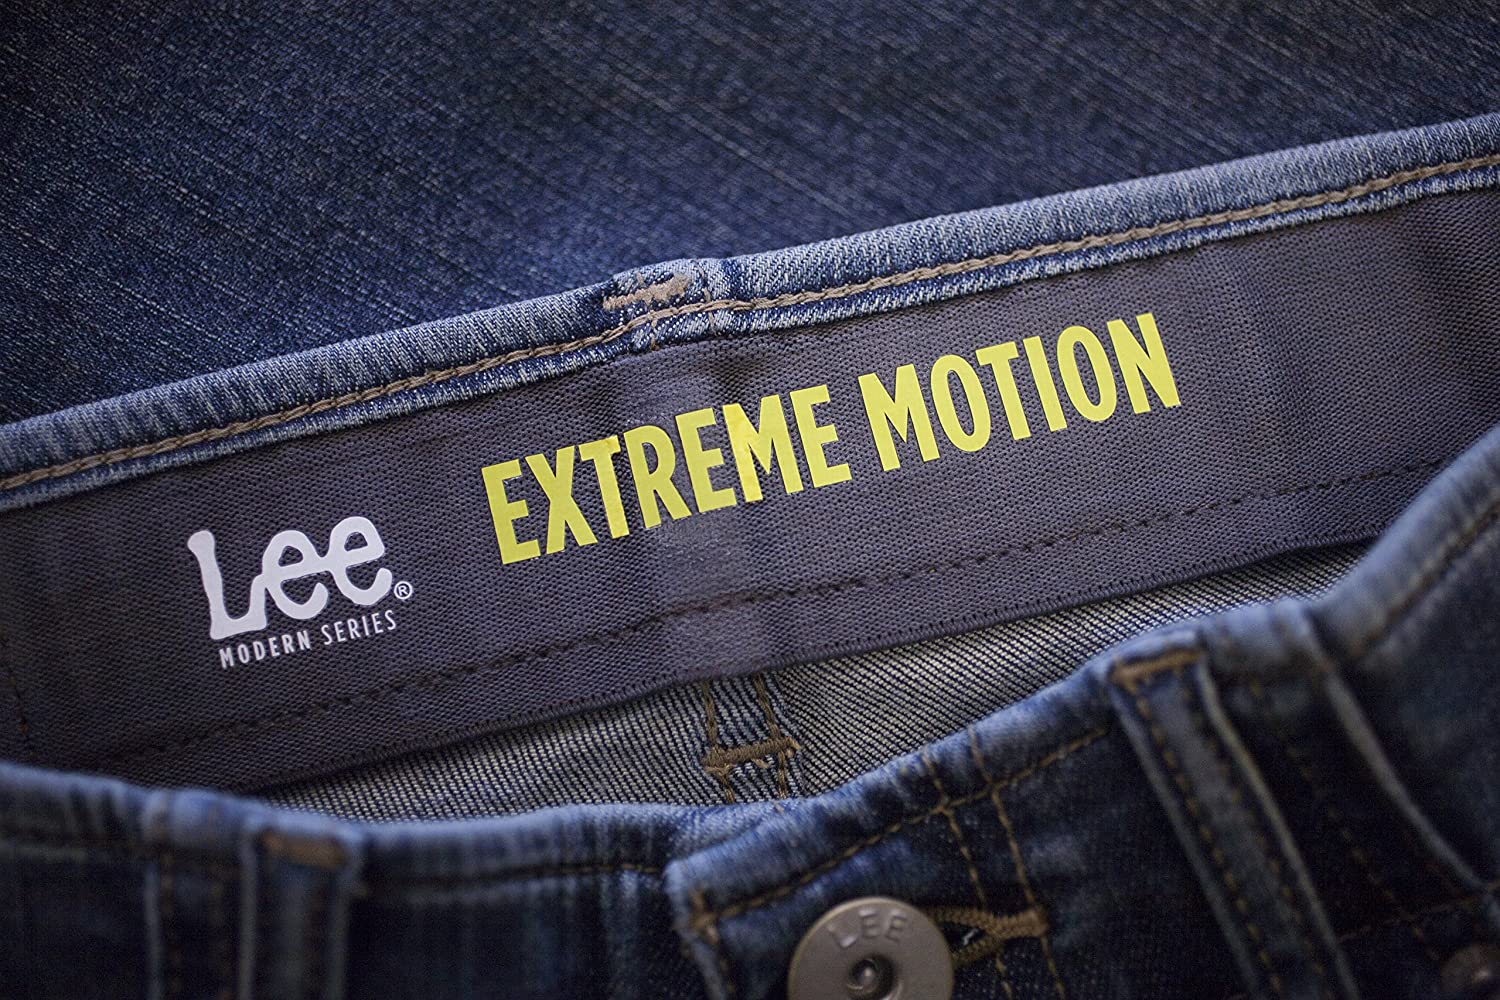 LEE Mens Modern Series Extreme Motion Straight Fit Tapered Leg Jean